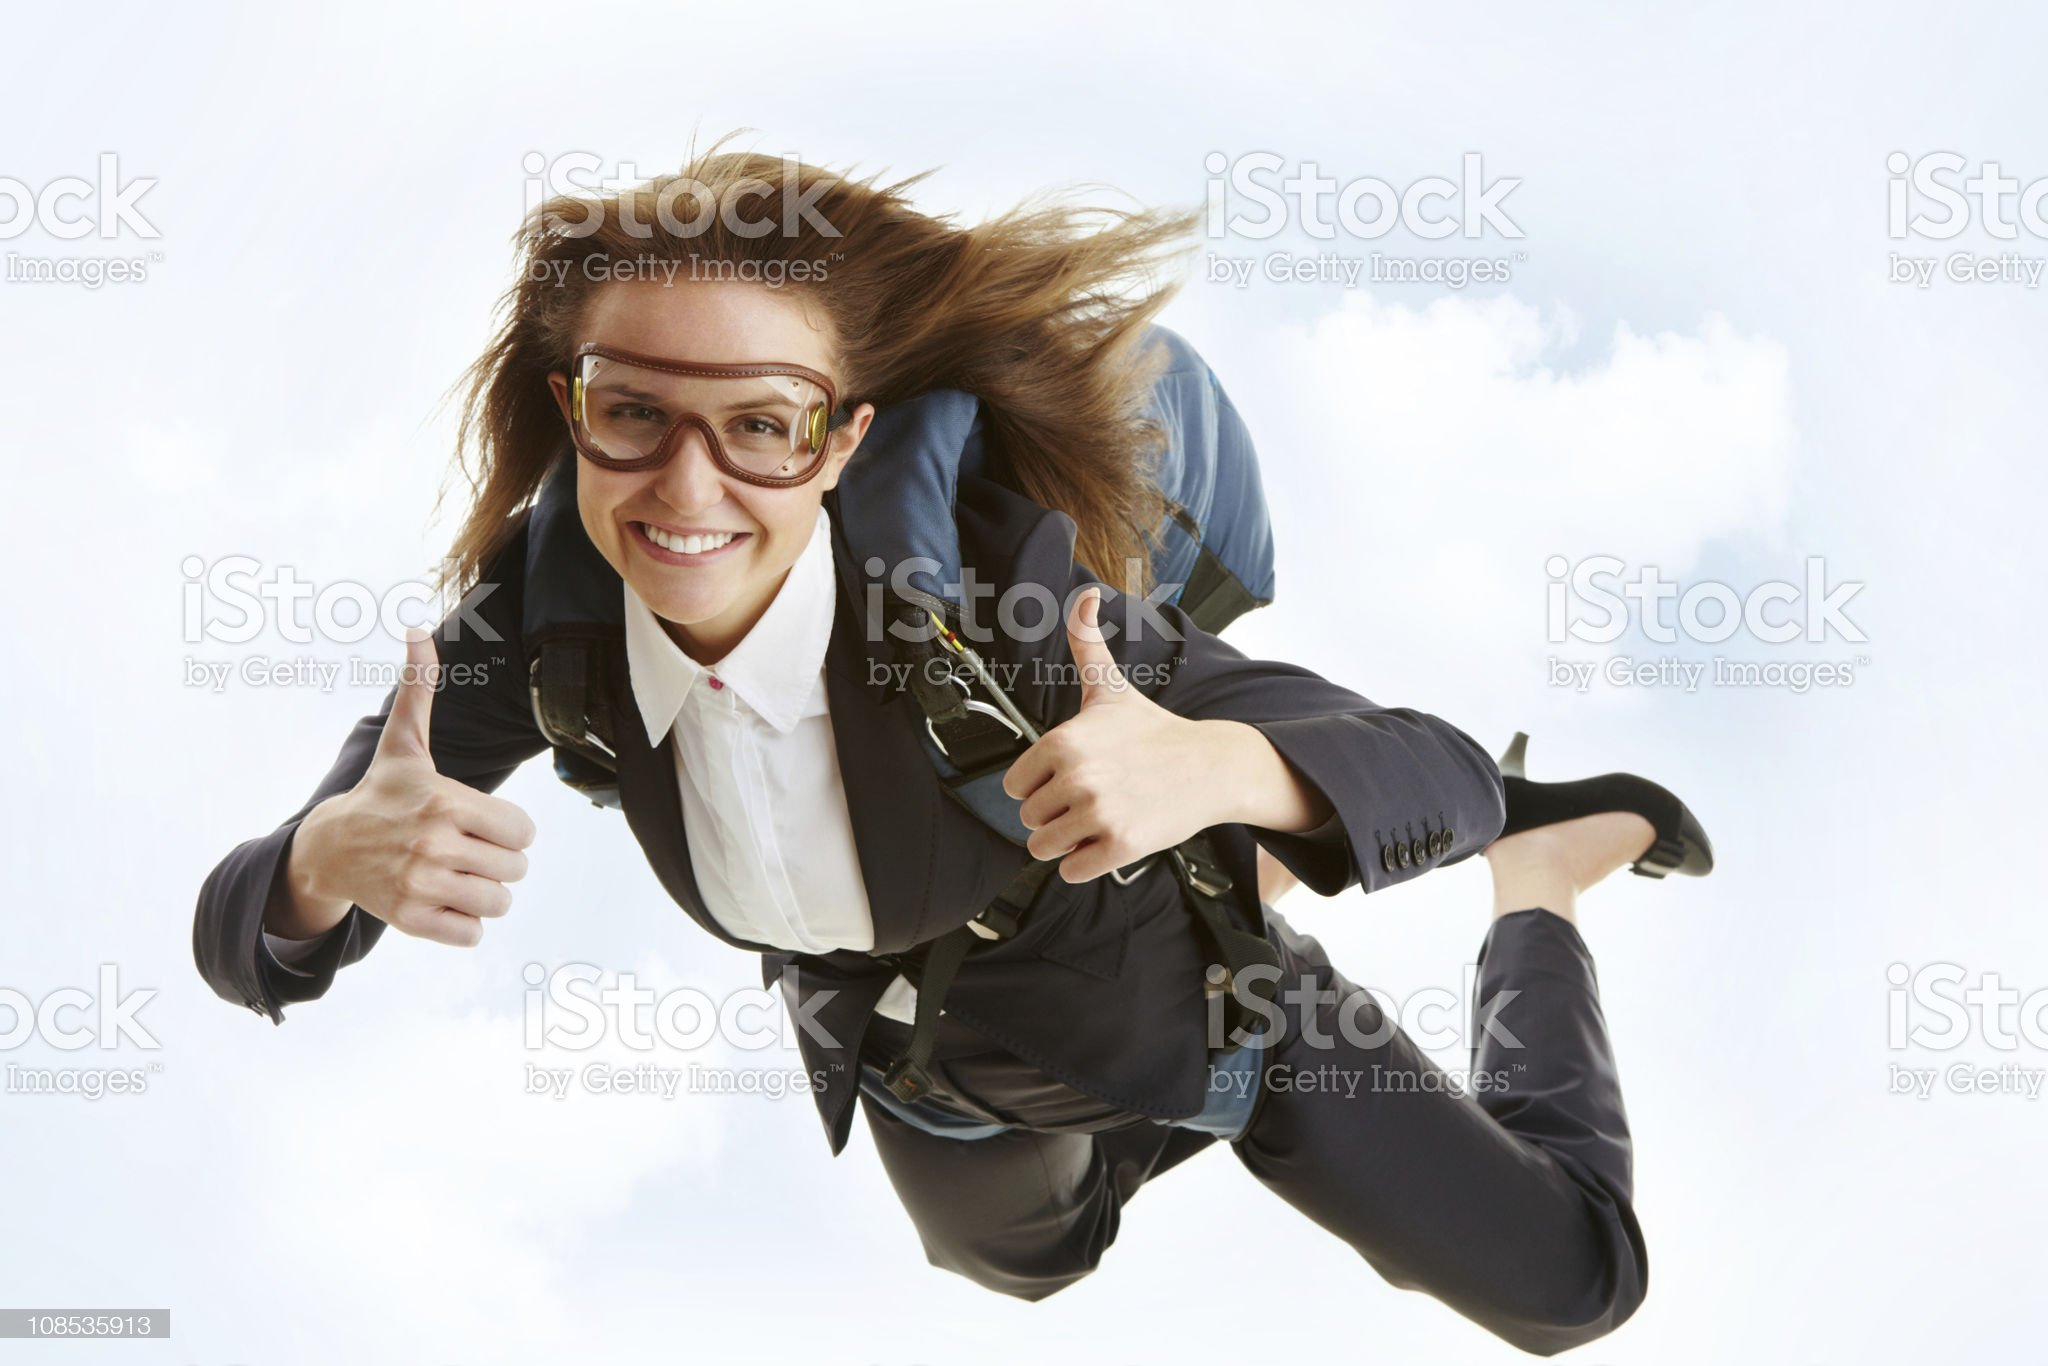 A woman skydiving in a business pantsuit and high heels  royalty-free stock photo